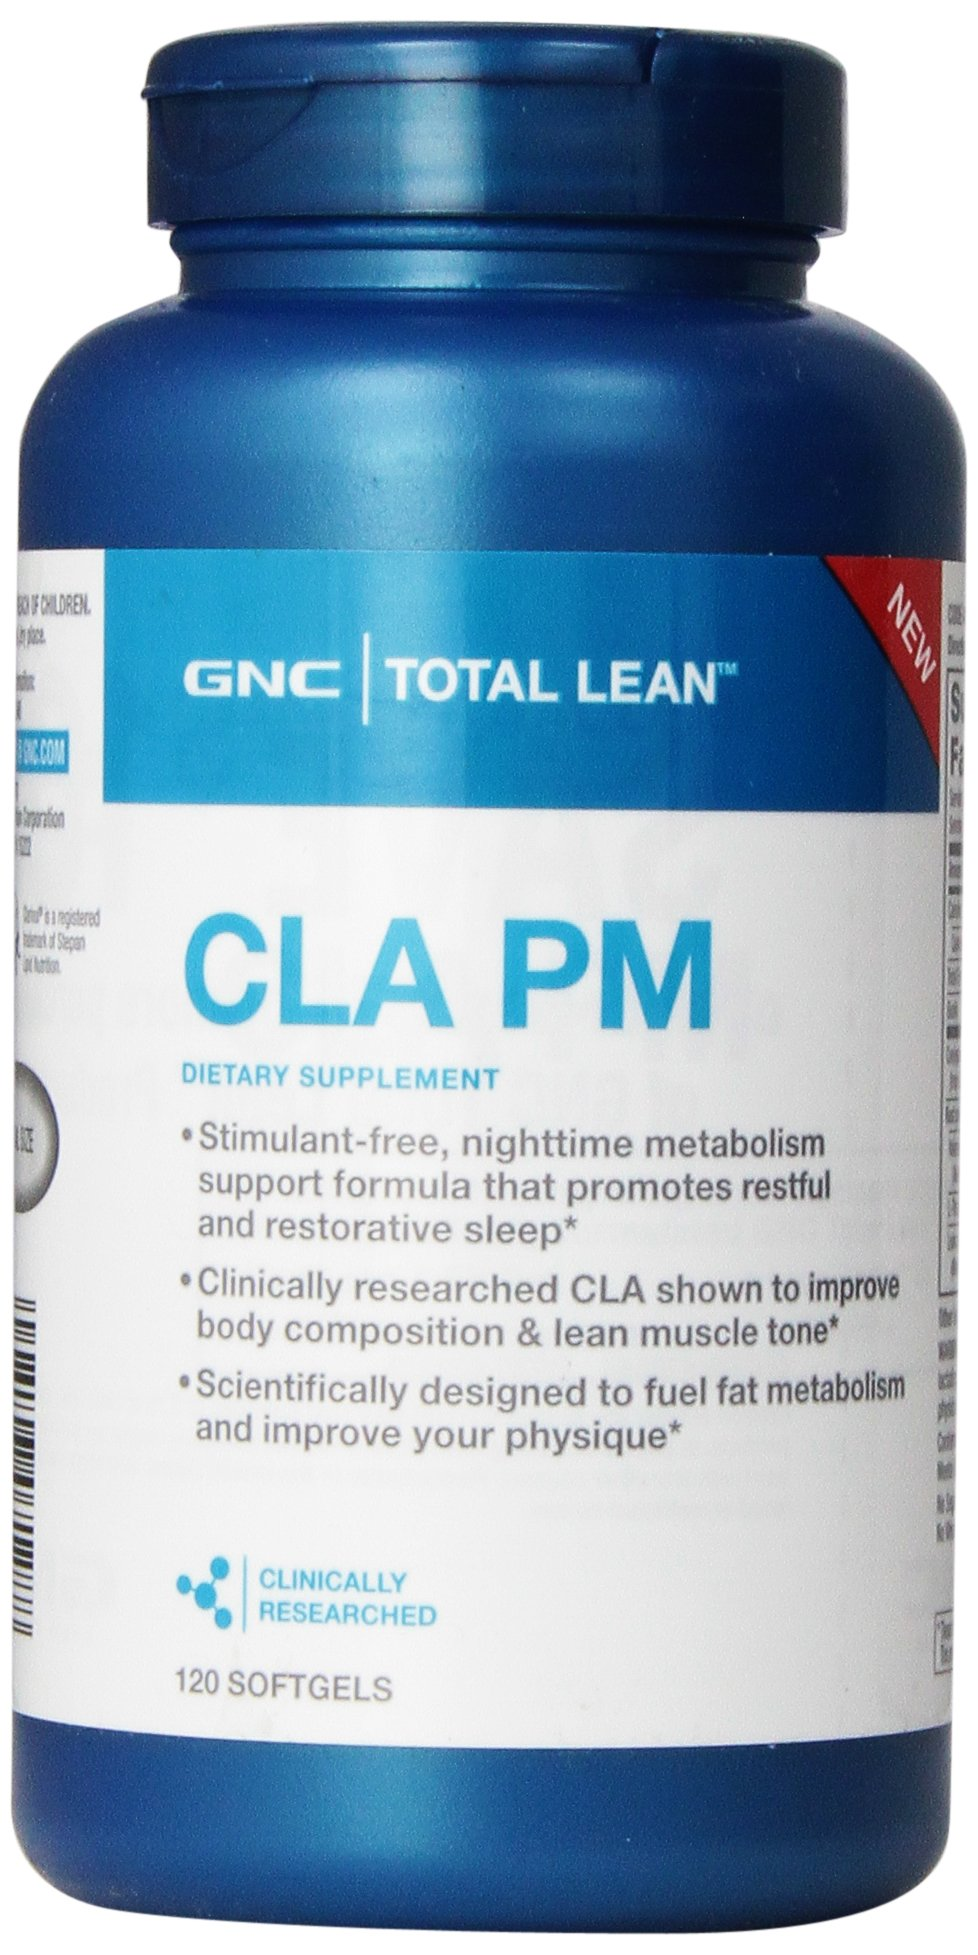 GNC Total Lean CLA PM 120 softgels